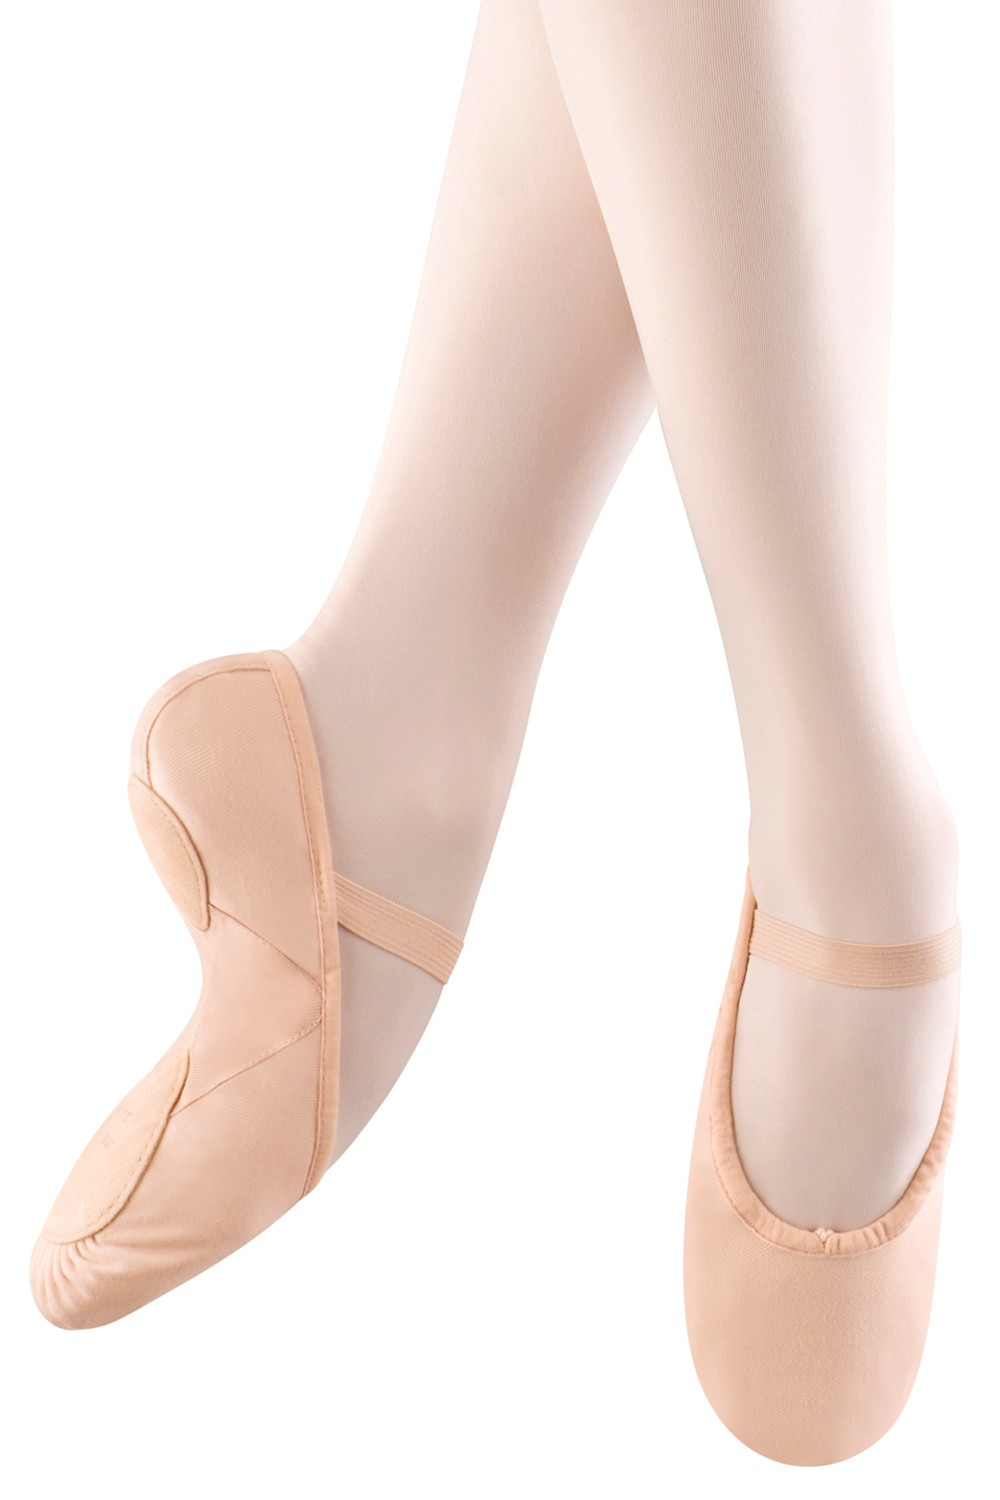 Prolite Ii Lona  Women's Ballet Shoes